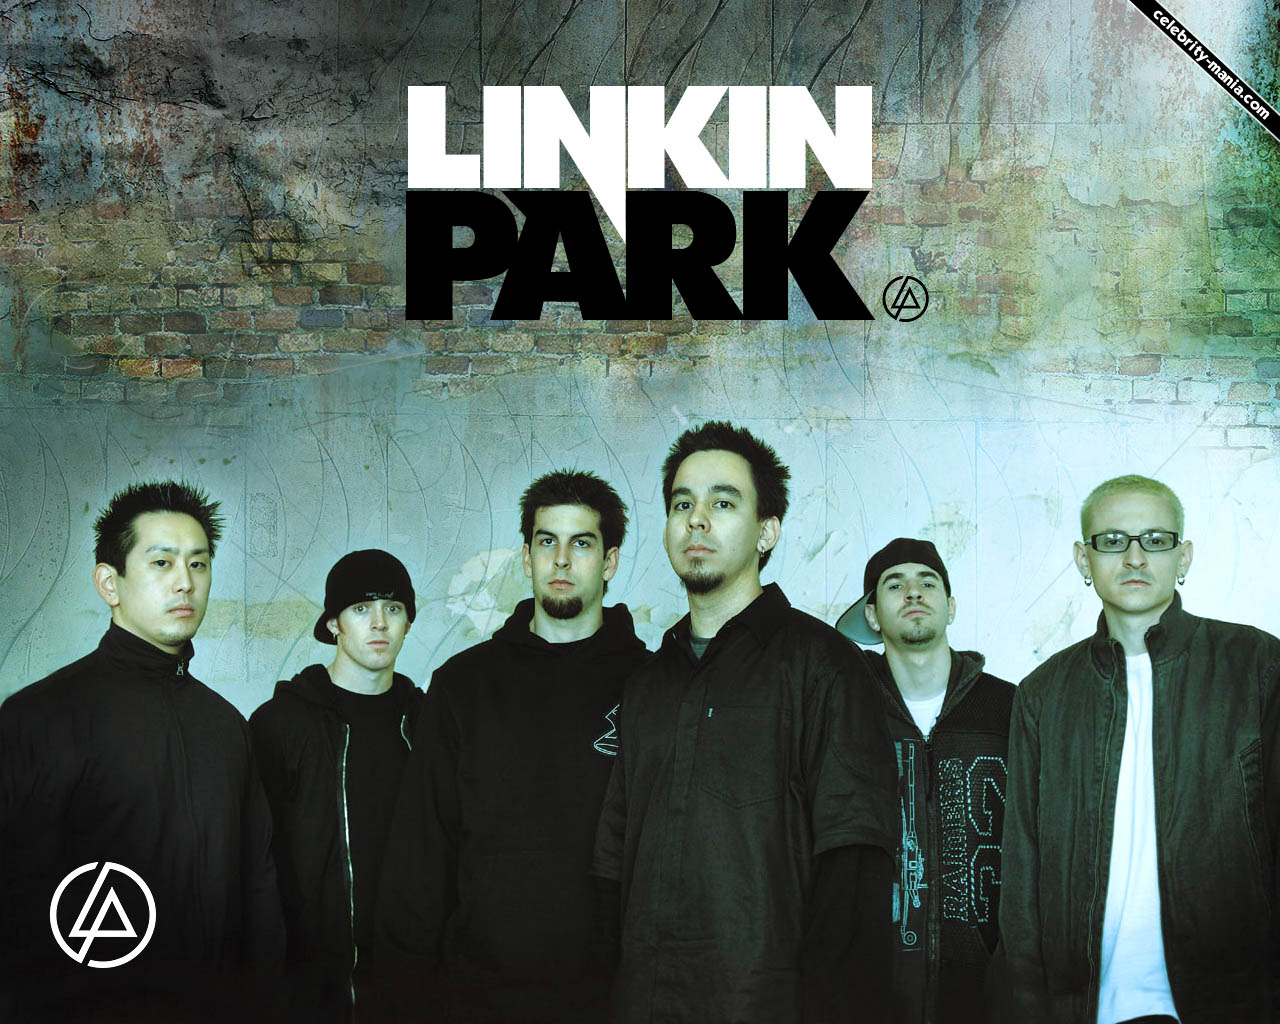 Linkin Park Linkin Park Photo 25142663 Fanpop